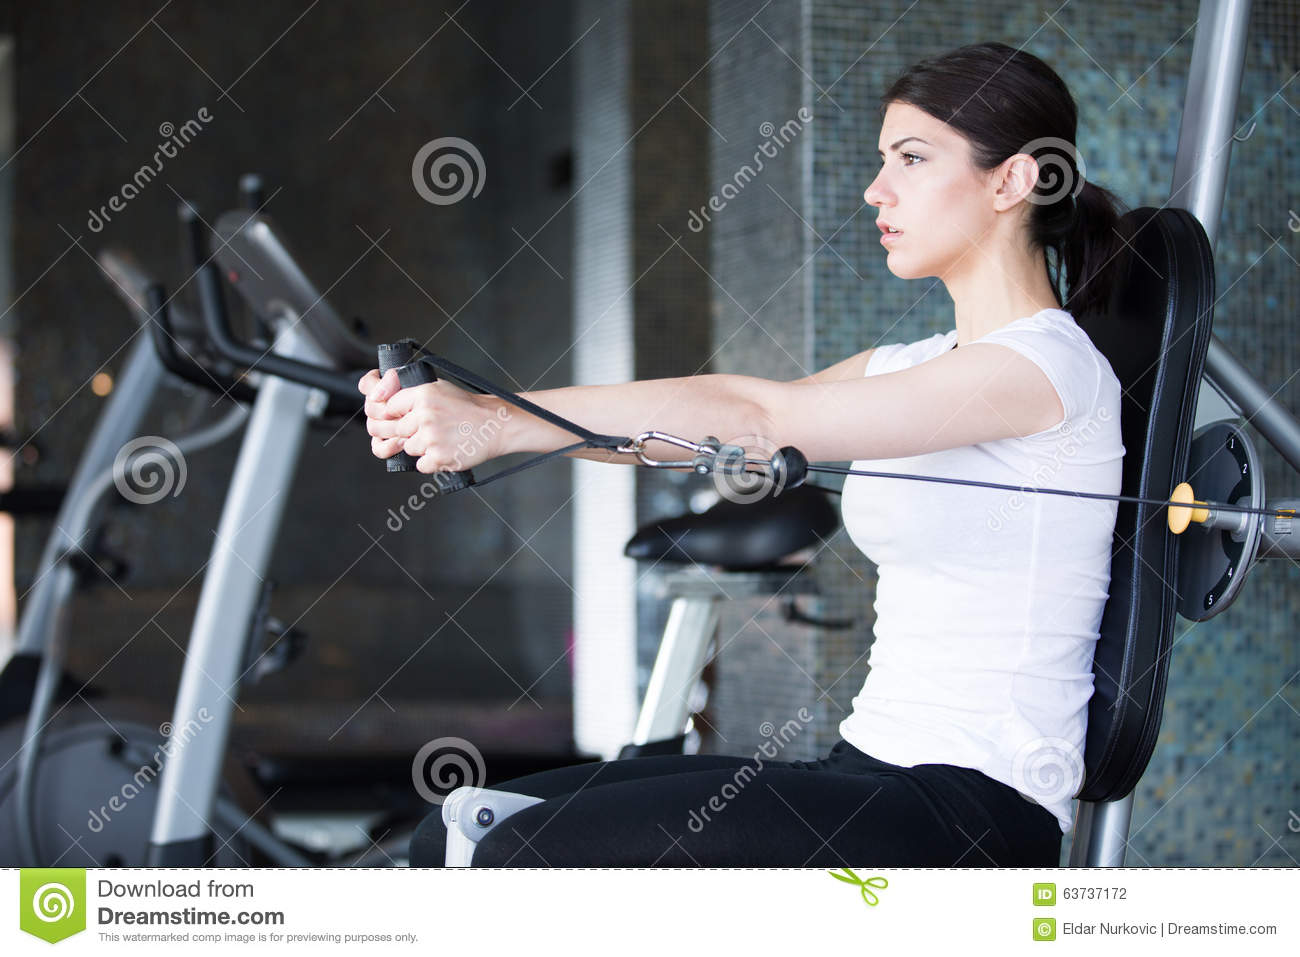 Woman weight training at gym. Exercising on pull down weight machine. Woman doing pull-ups exercising lifting dumbbells.